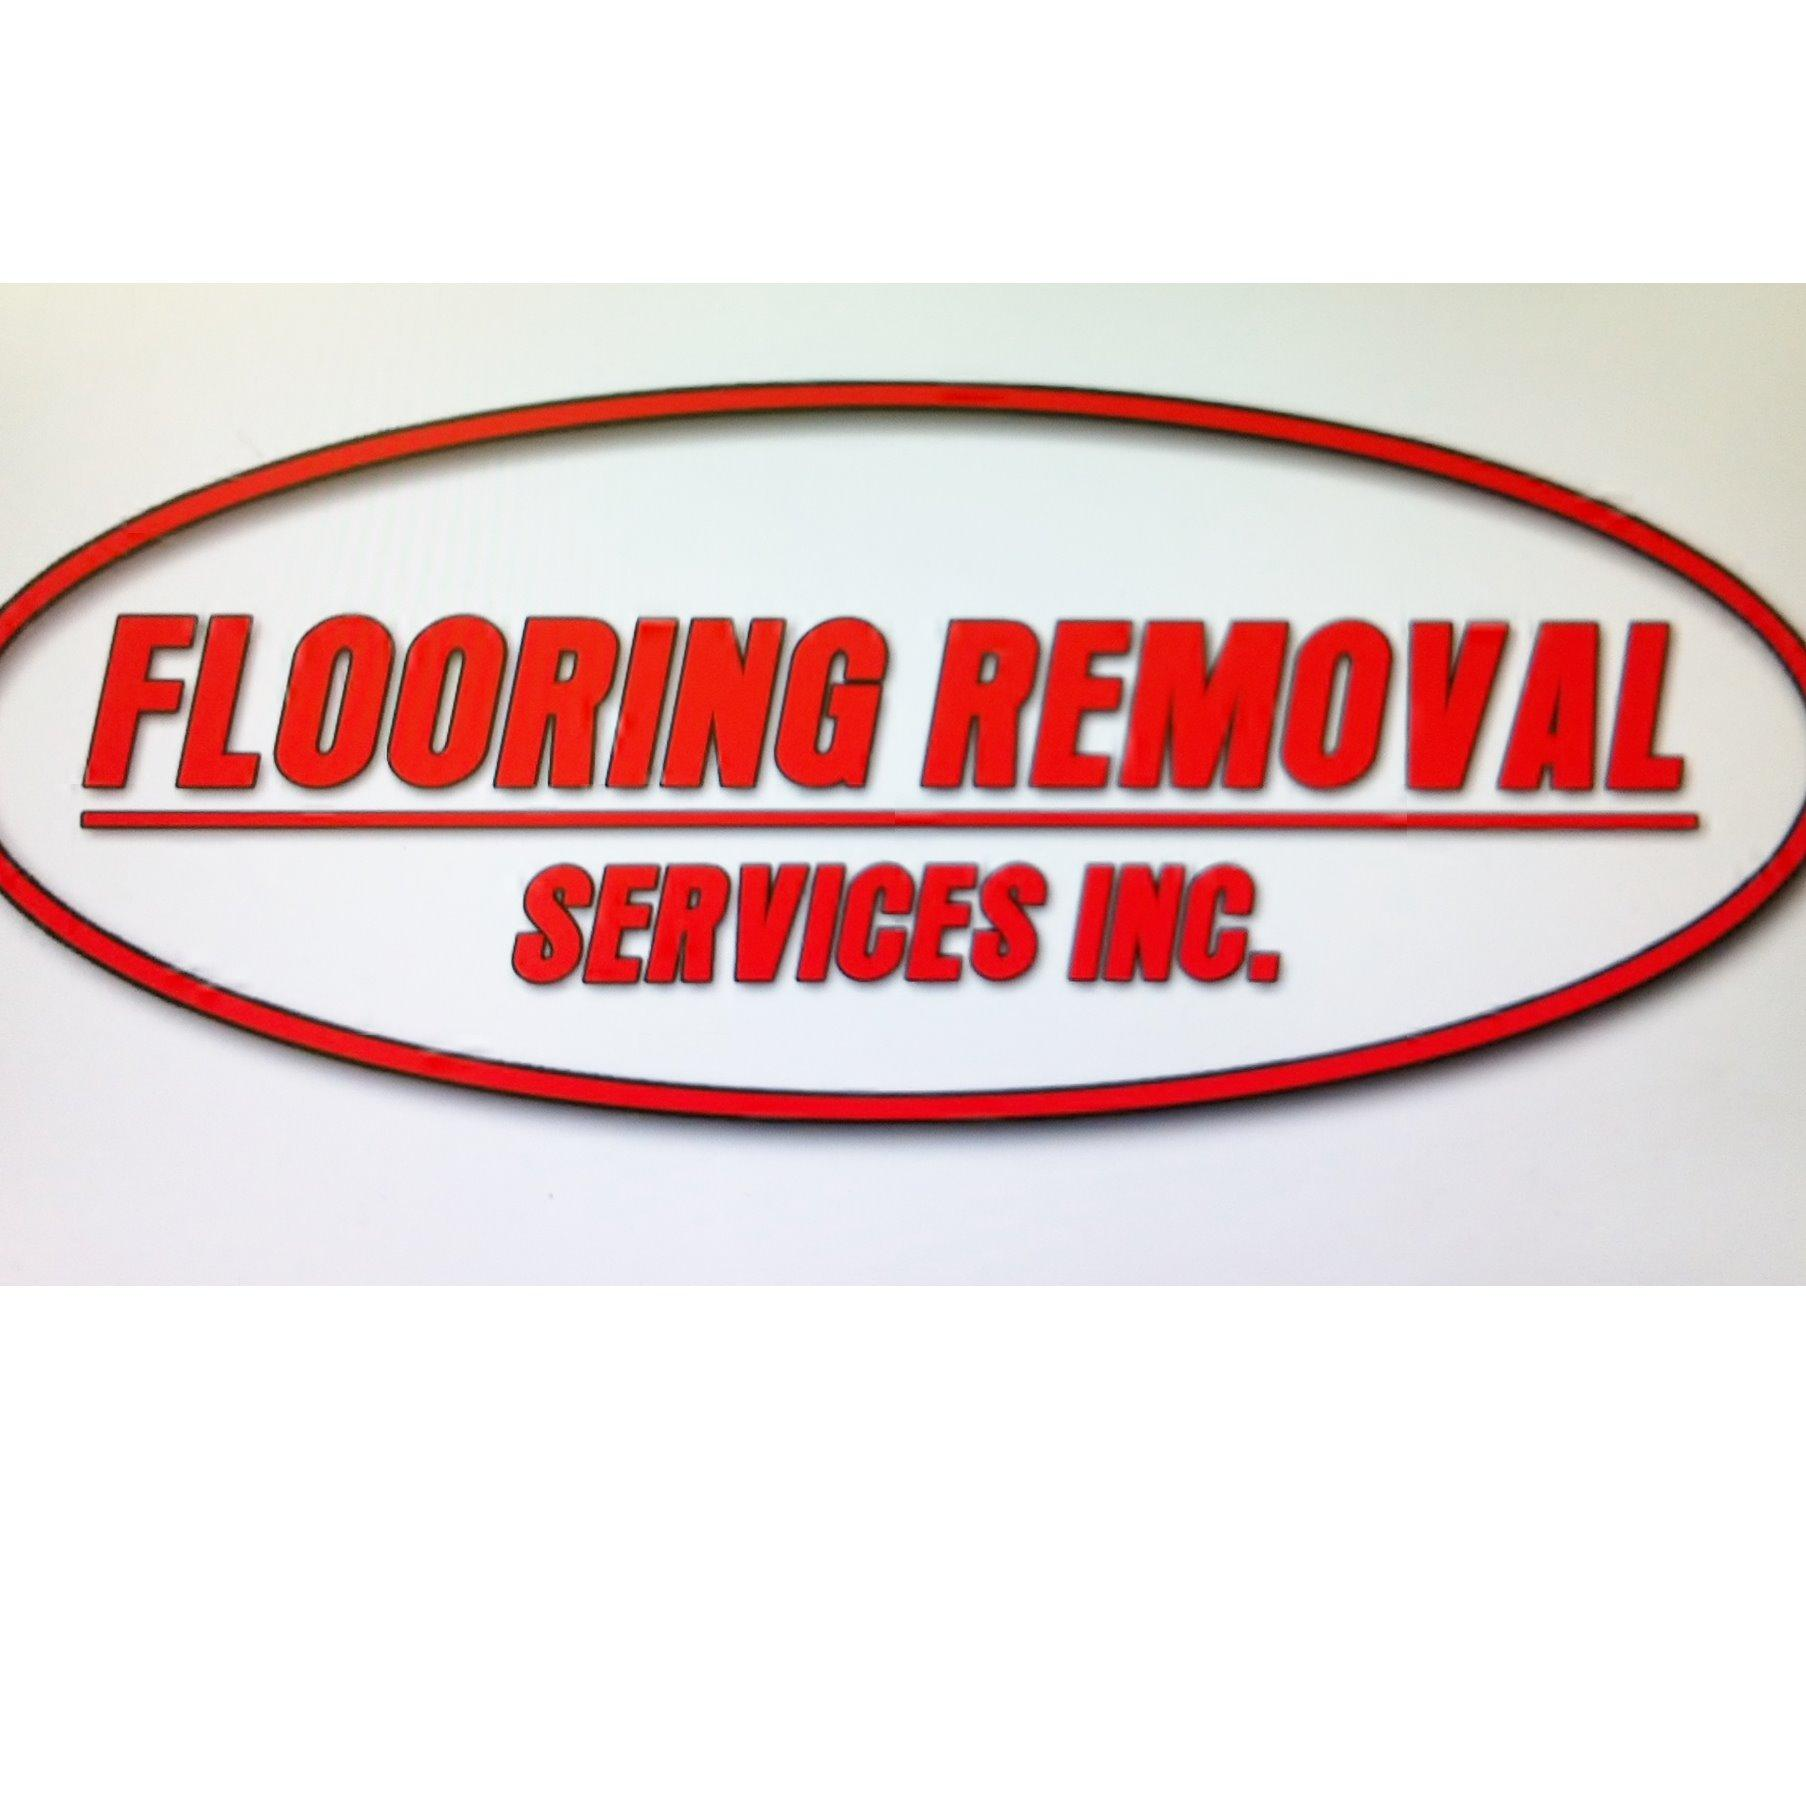 Flooring Removal Services image 4